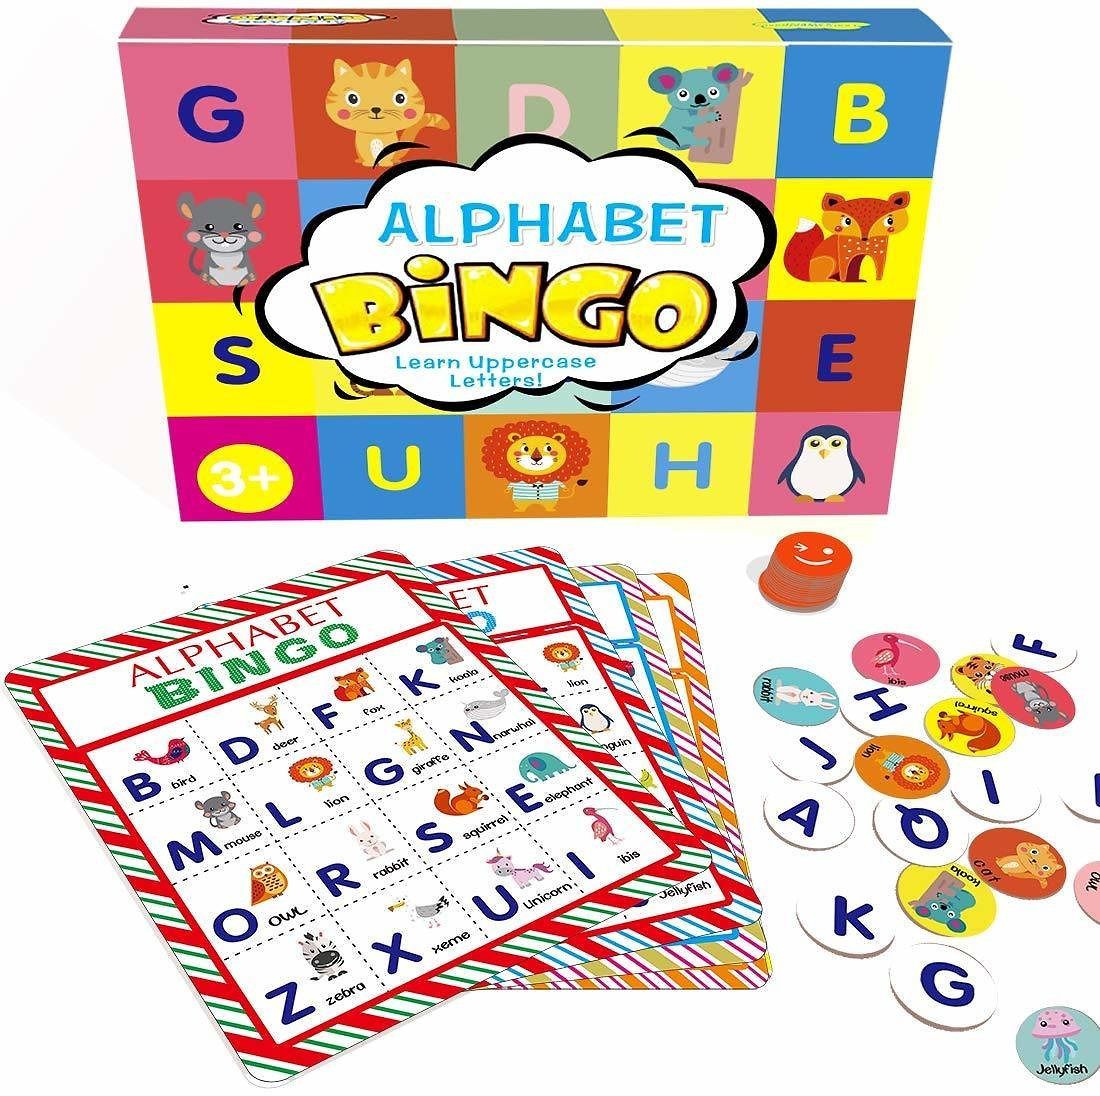 Alphabet Learning Bingo Cards Game for Kids - Up to 8 Players